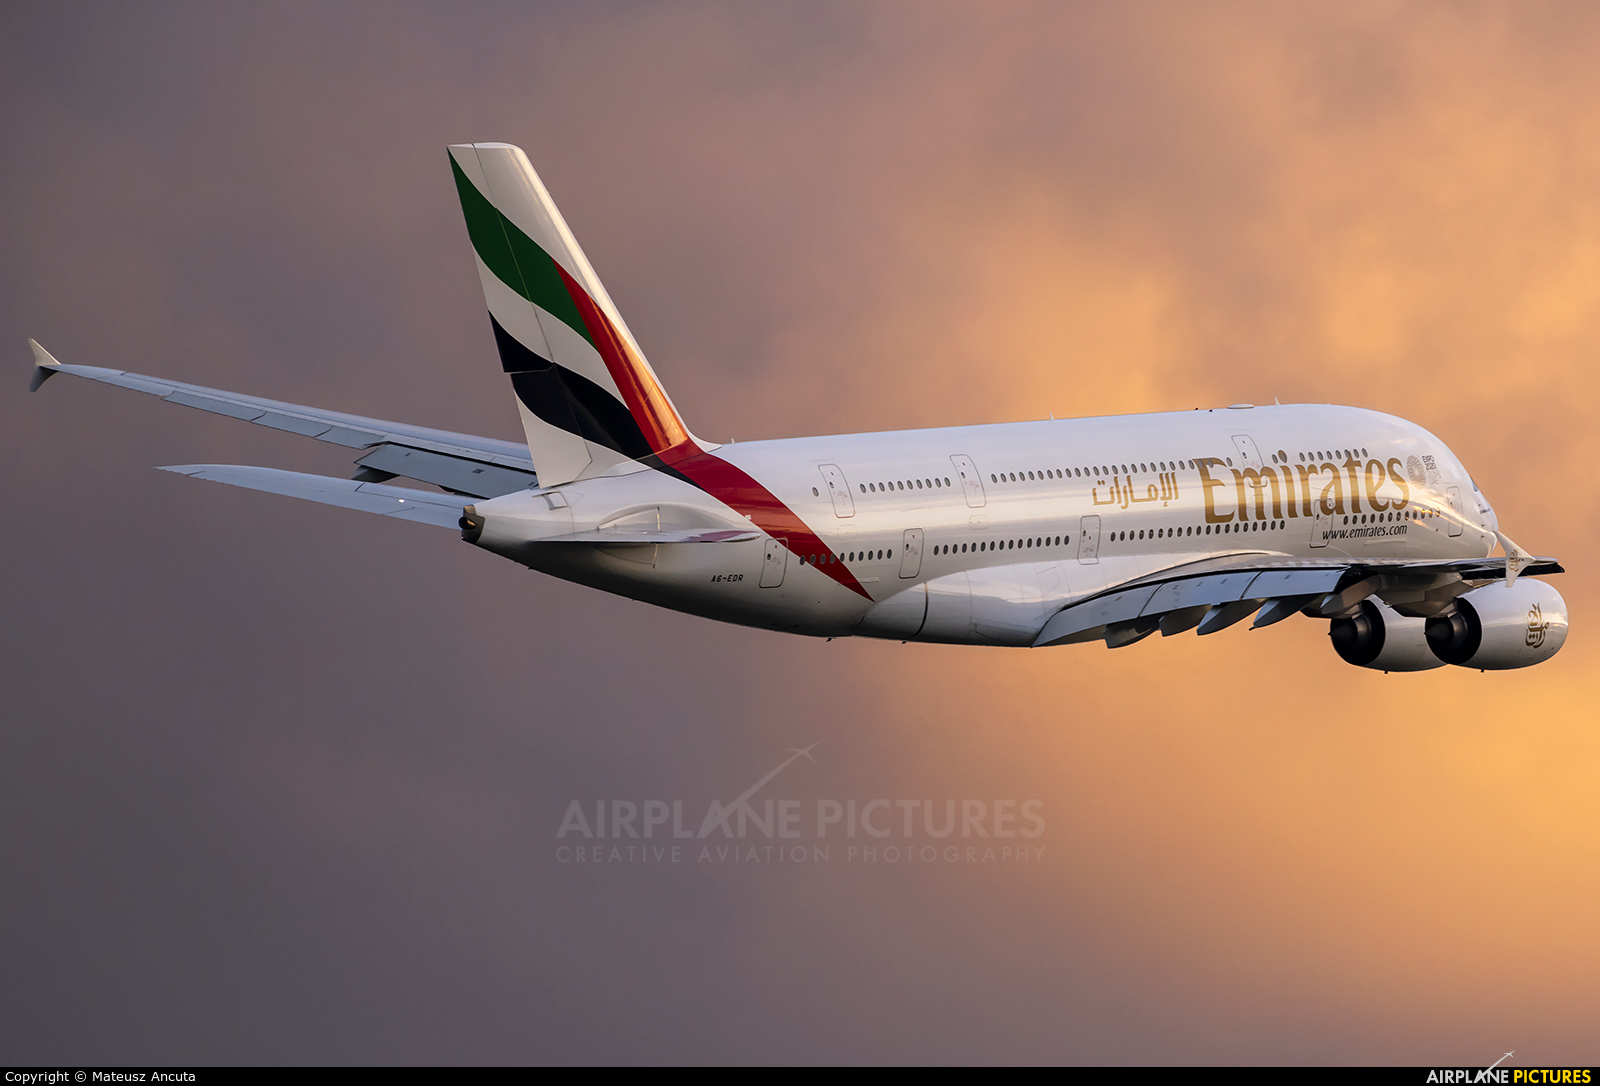 Emirates Airlines A6-EDR aircraft at London - Heathrow